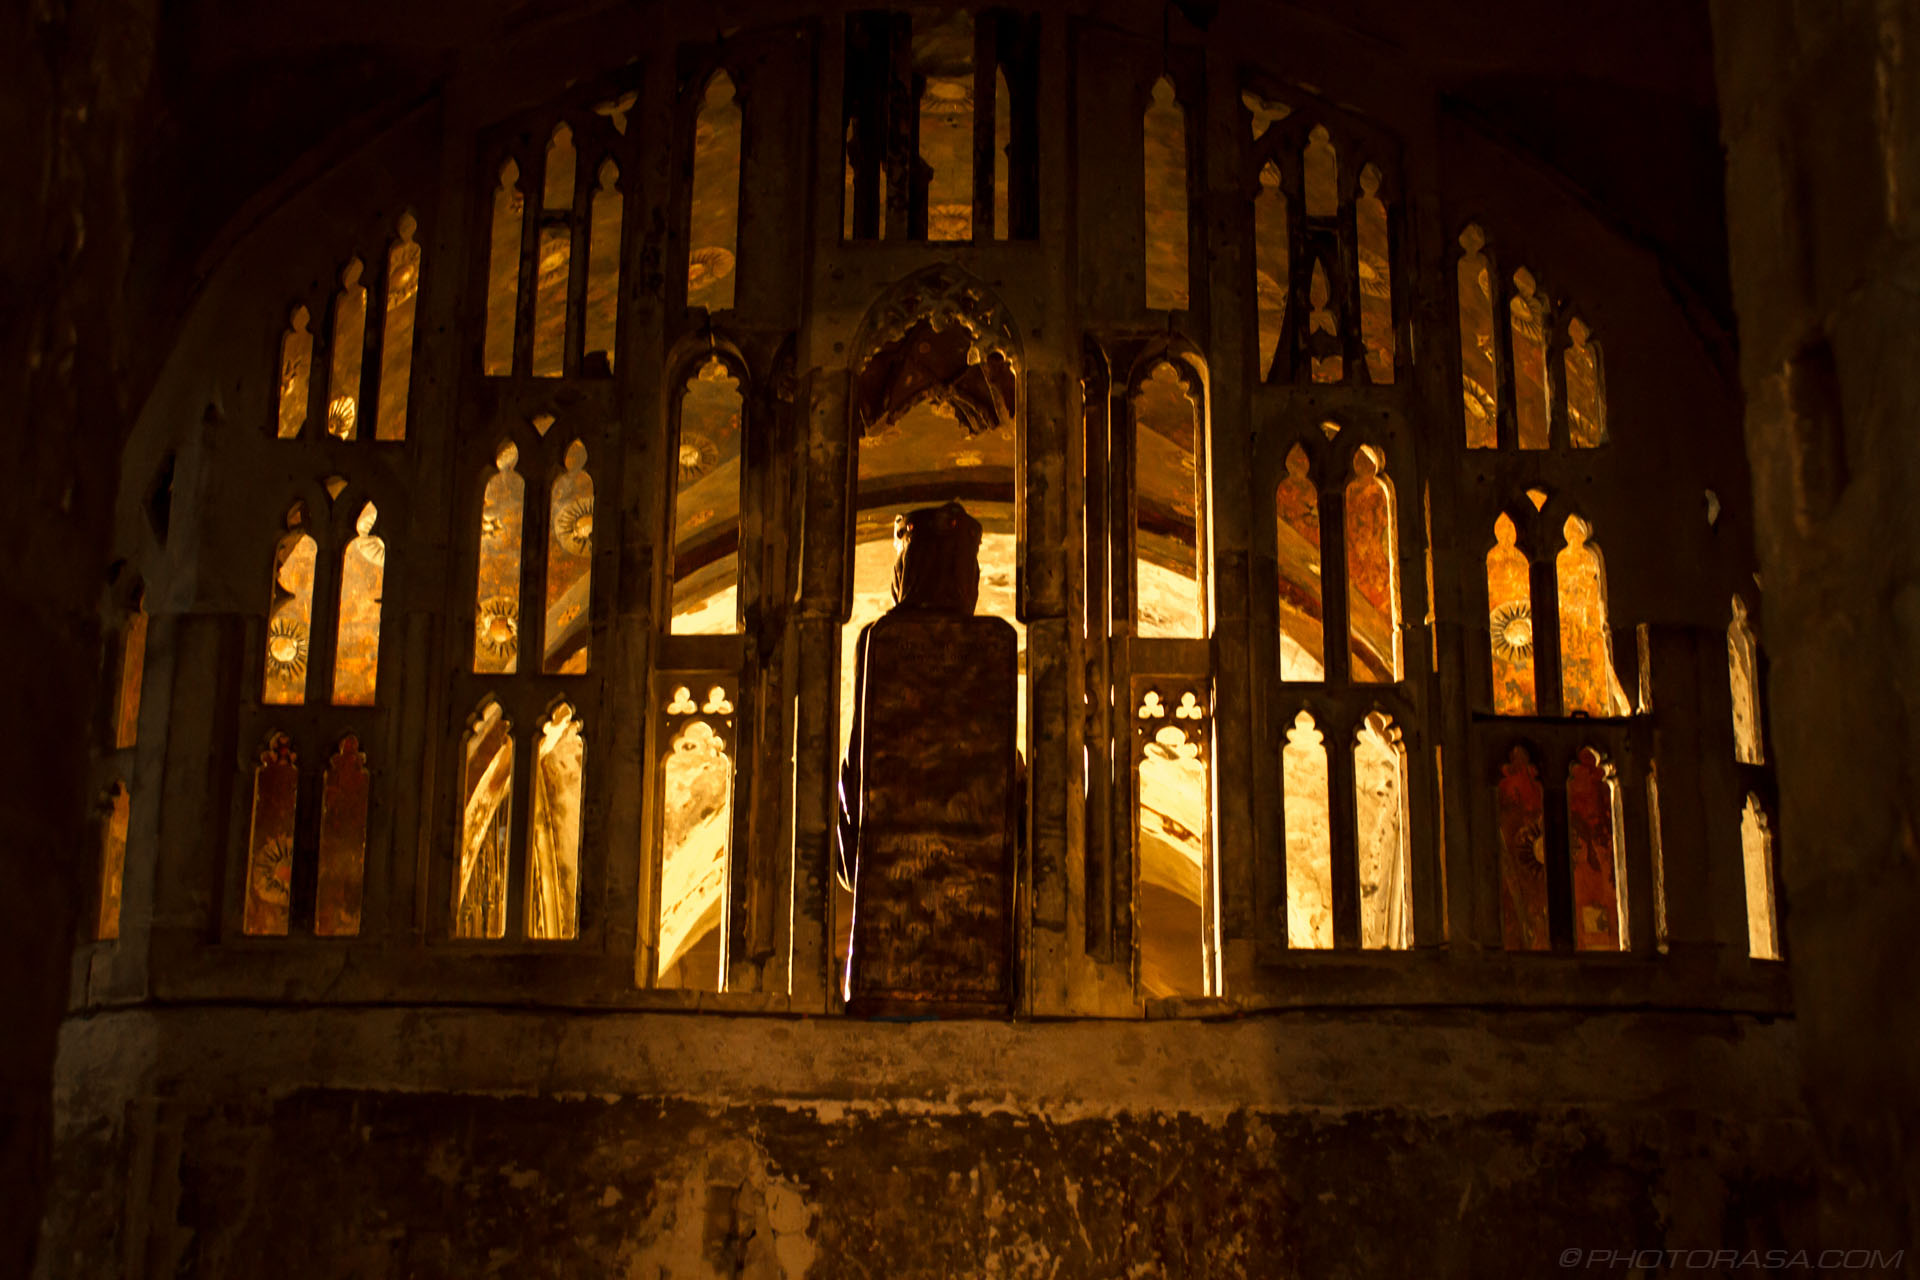 http://photorasa.com/canterbury-cathedral/lattice-intricately-carved-into-crypt-wall/